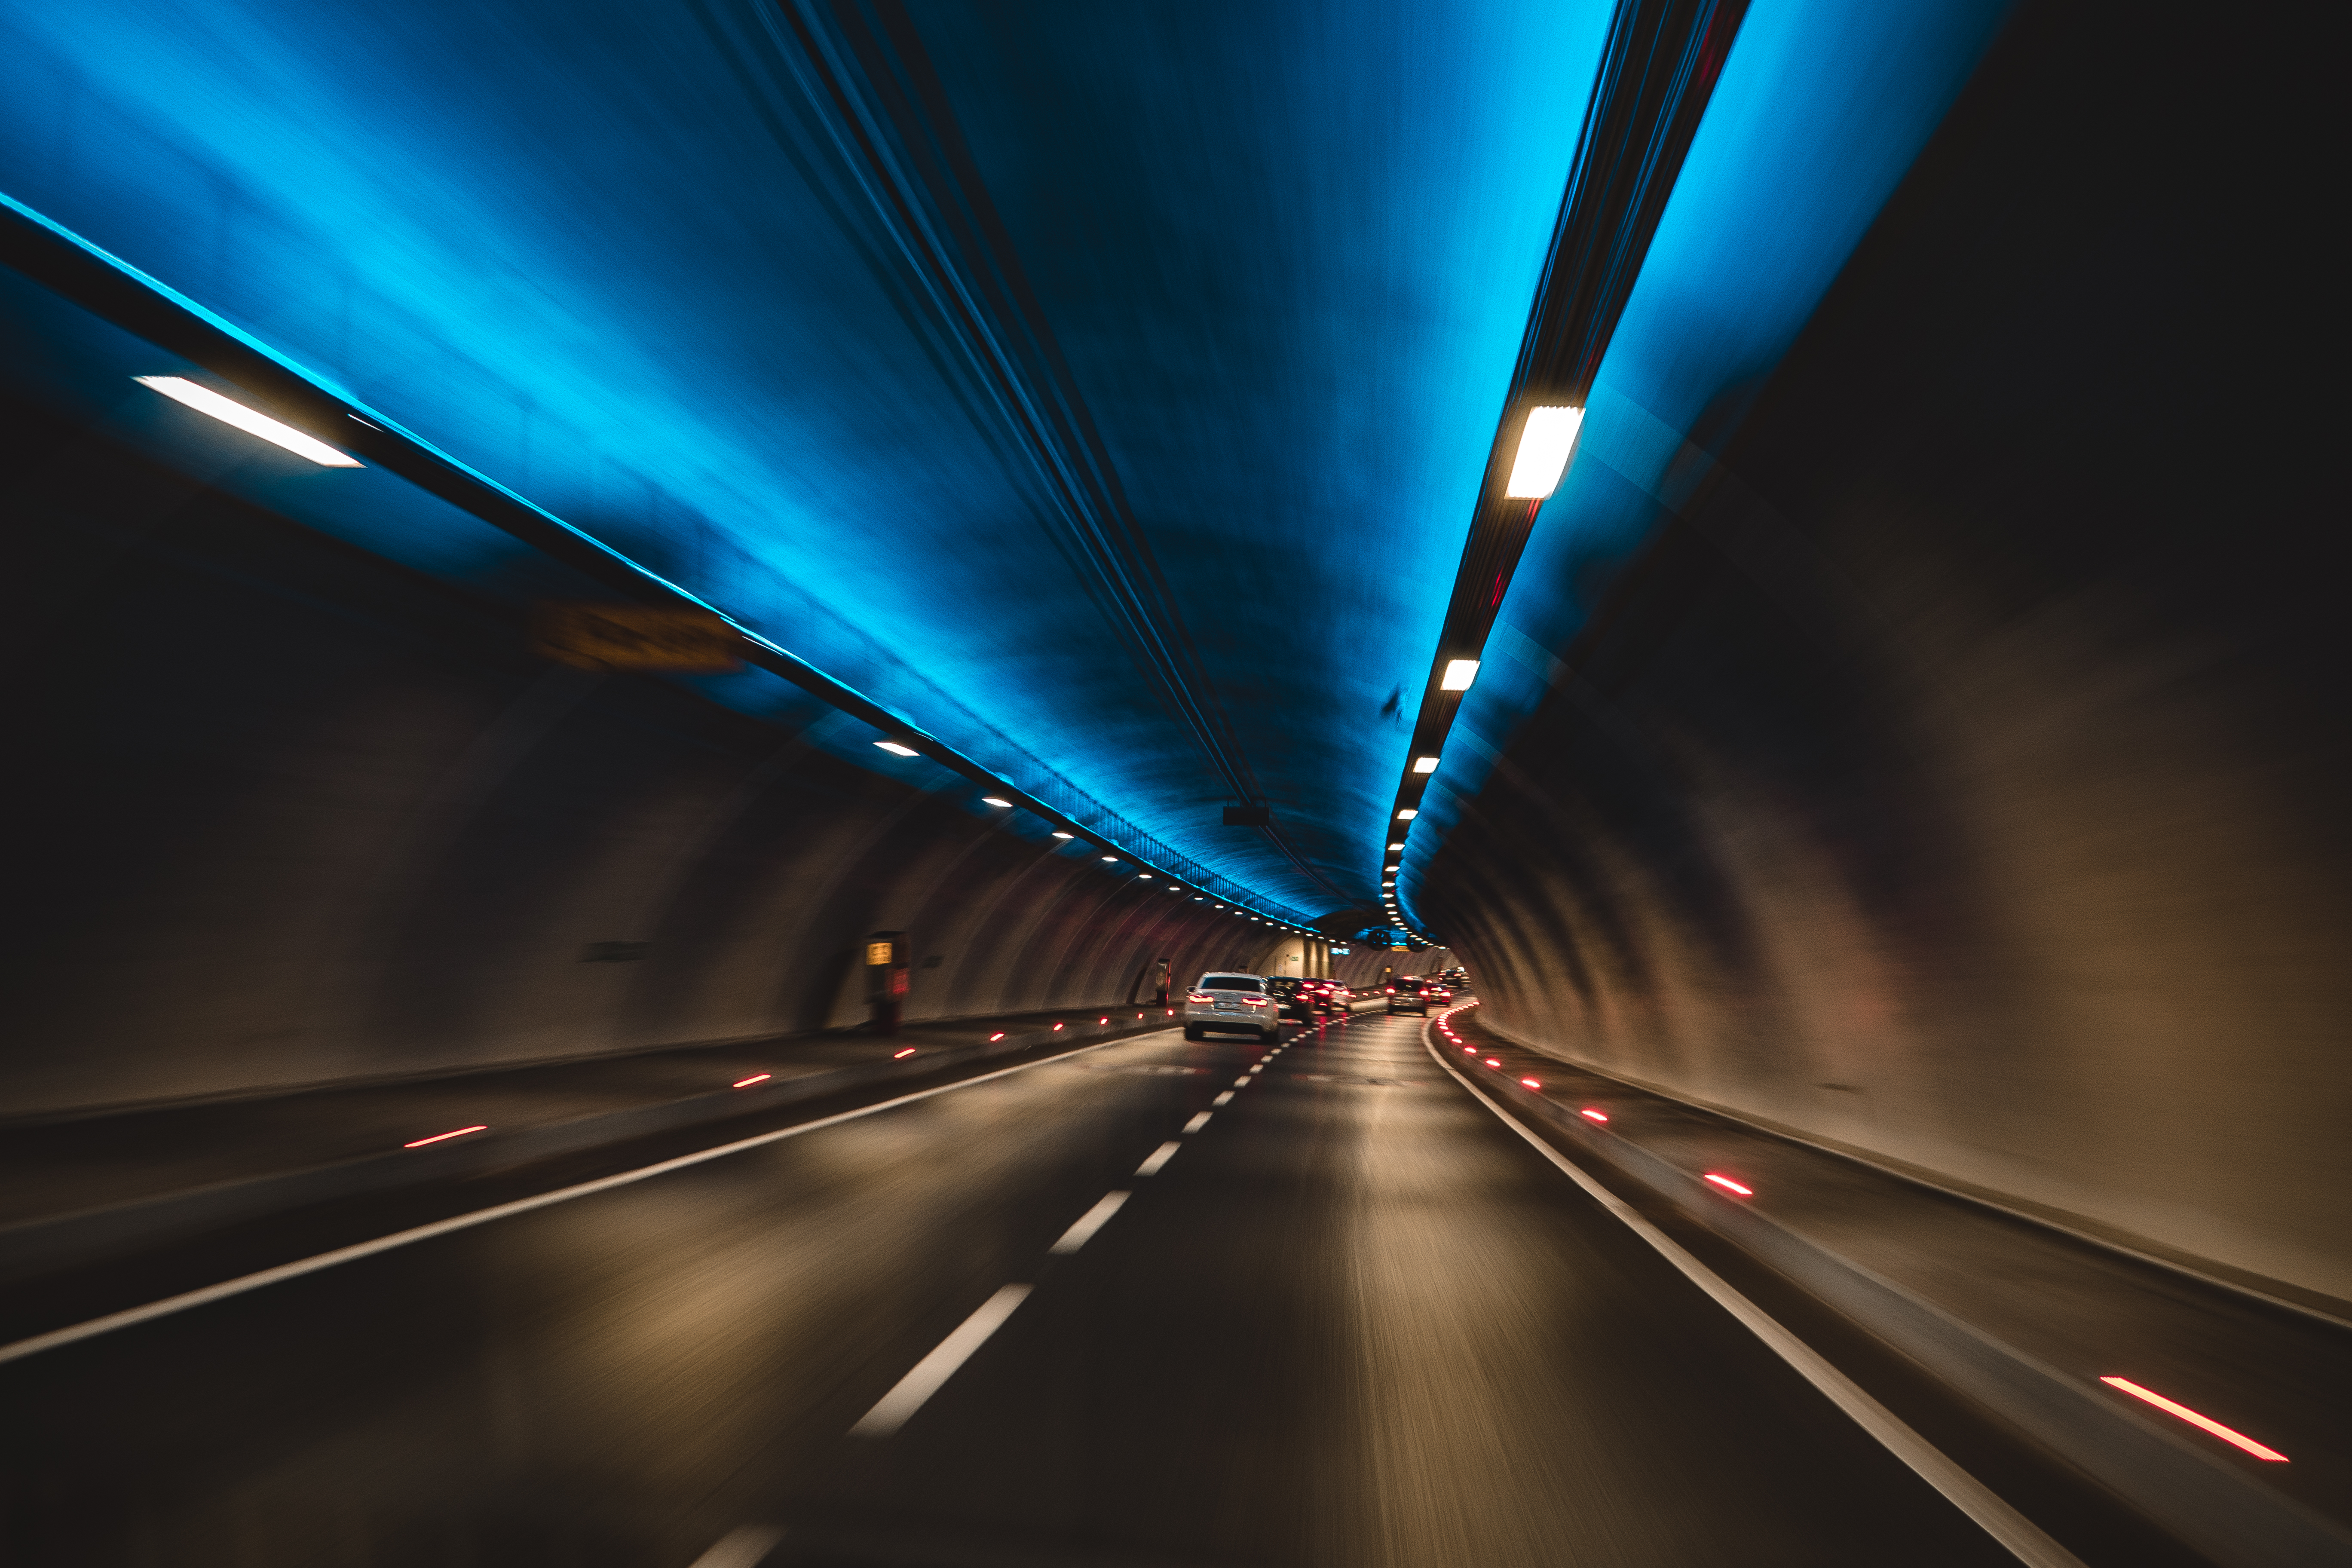 Timelapse Photography of Cars in Tunnel